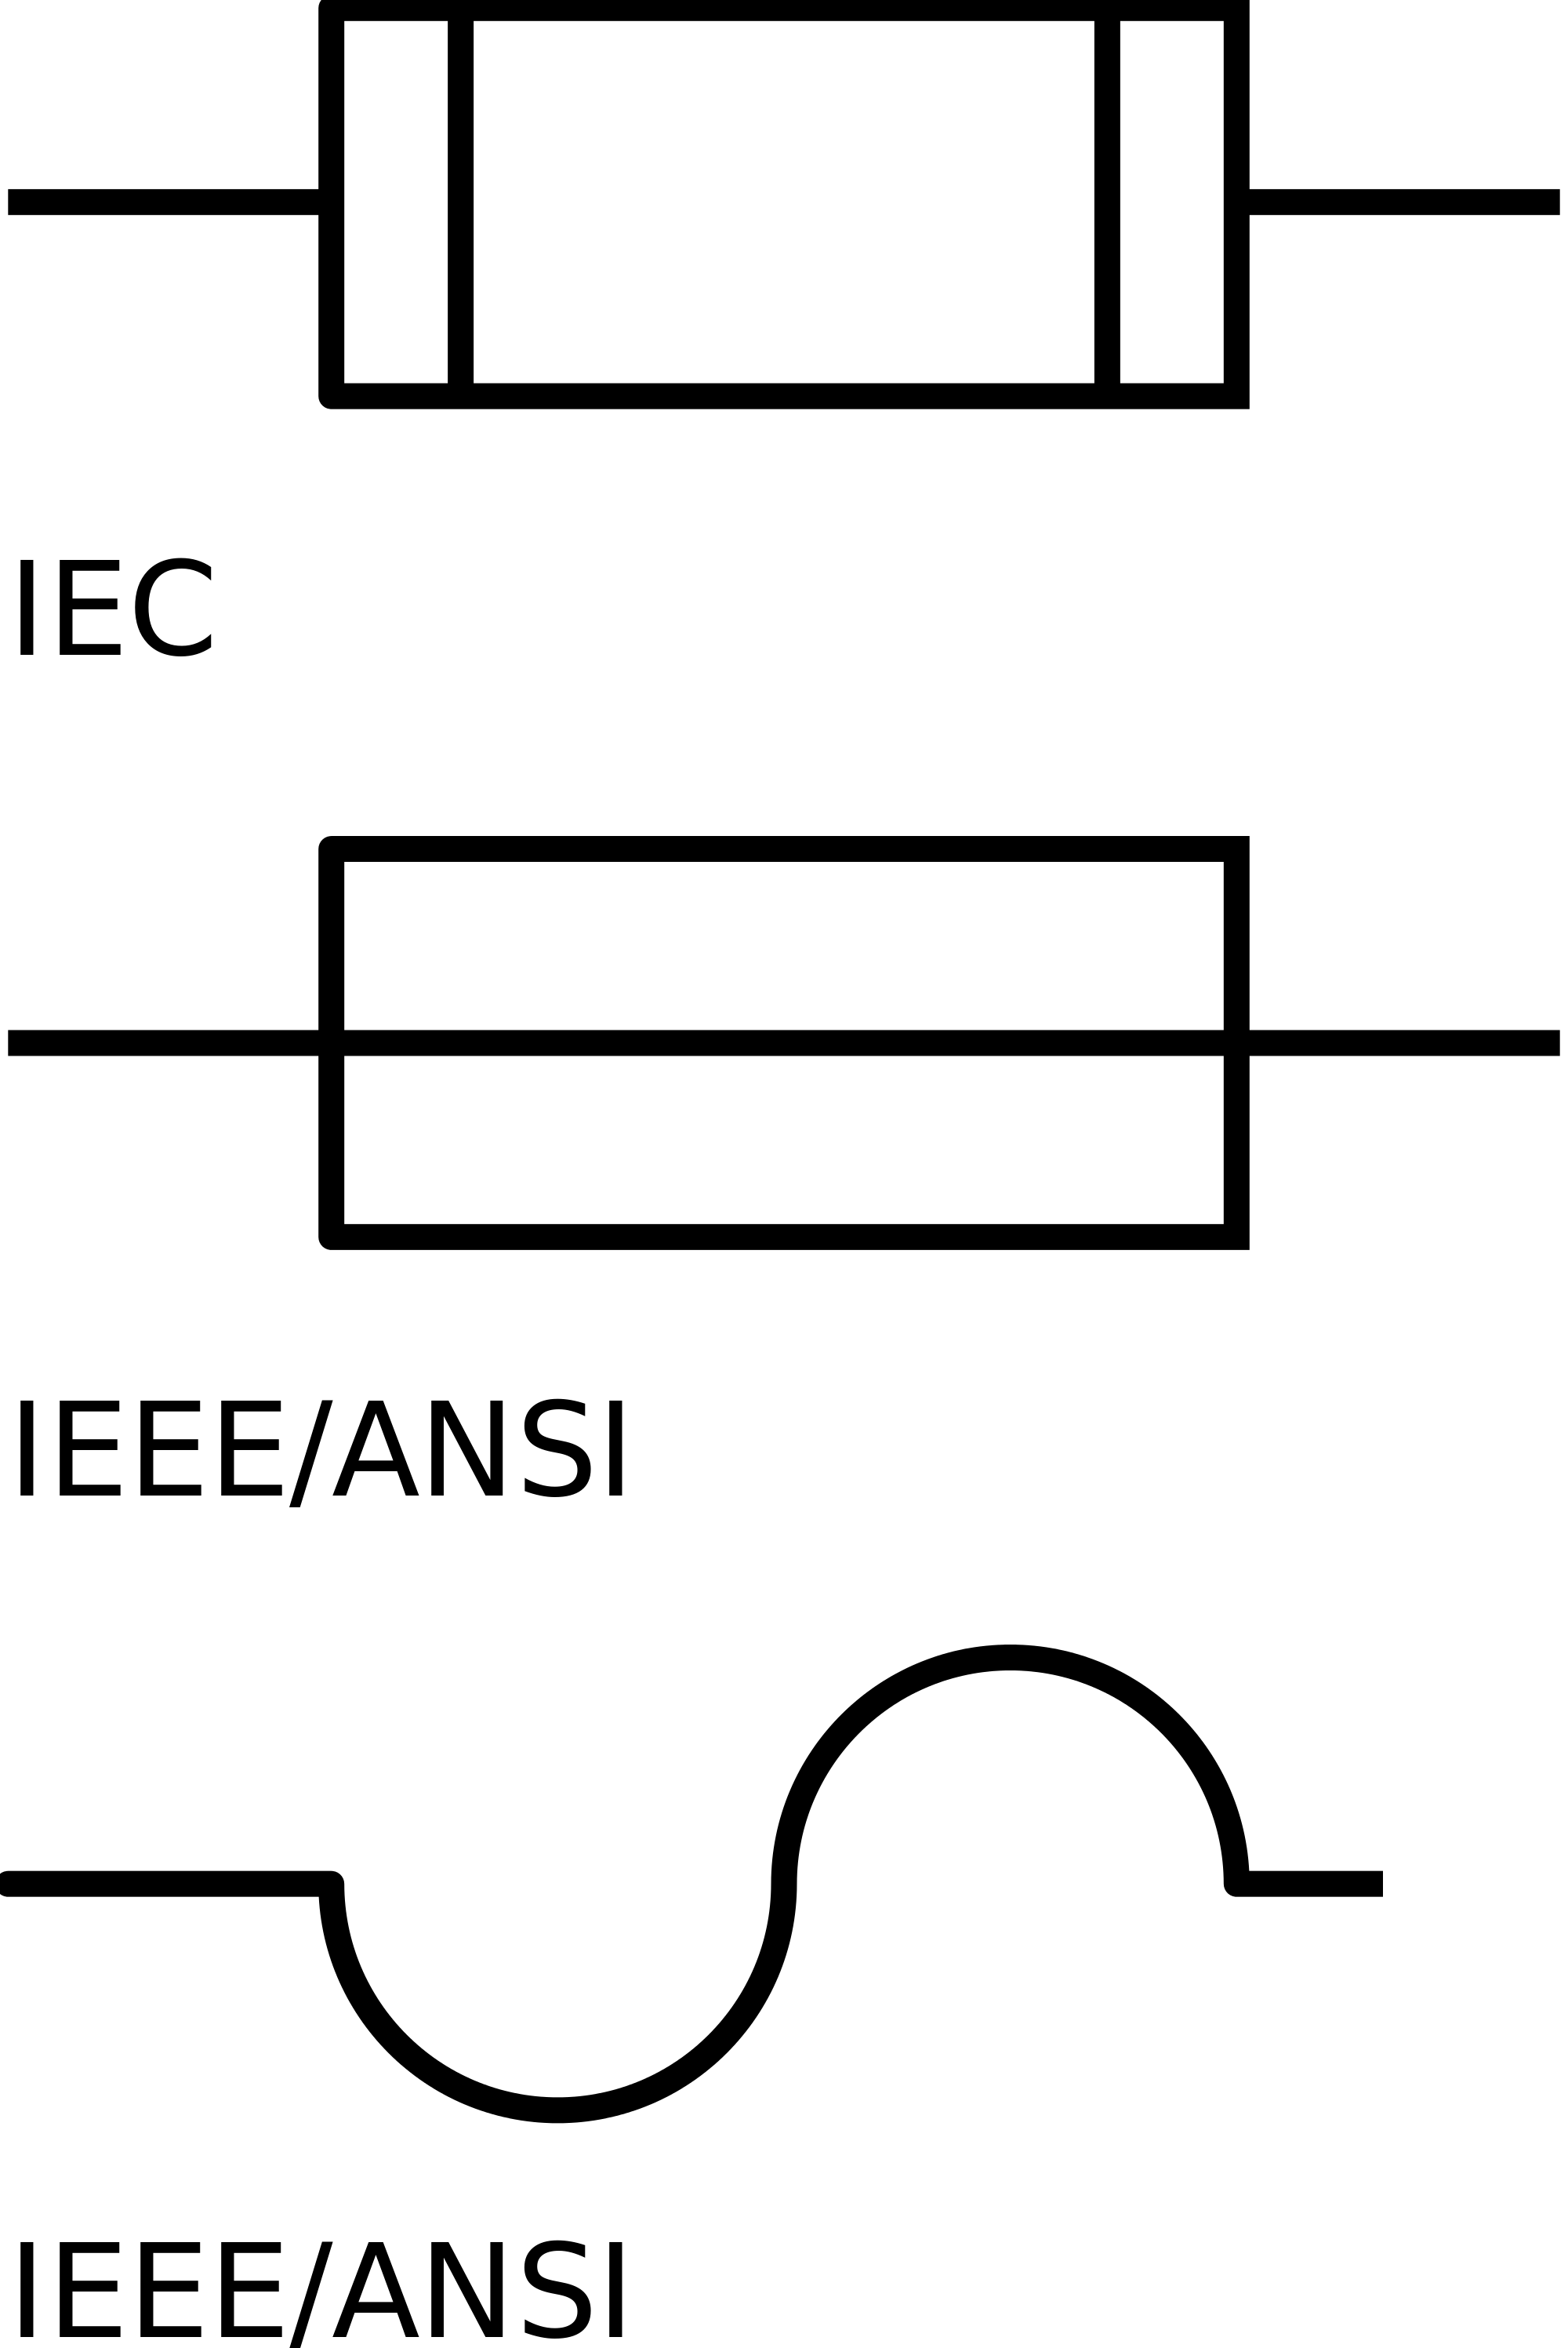 electrical wiring diagram symbols fuse viair pressure switch relay free cliparts download clip art